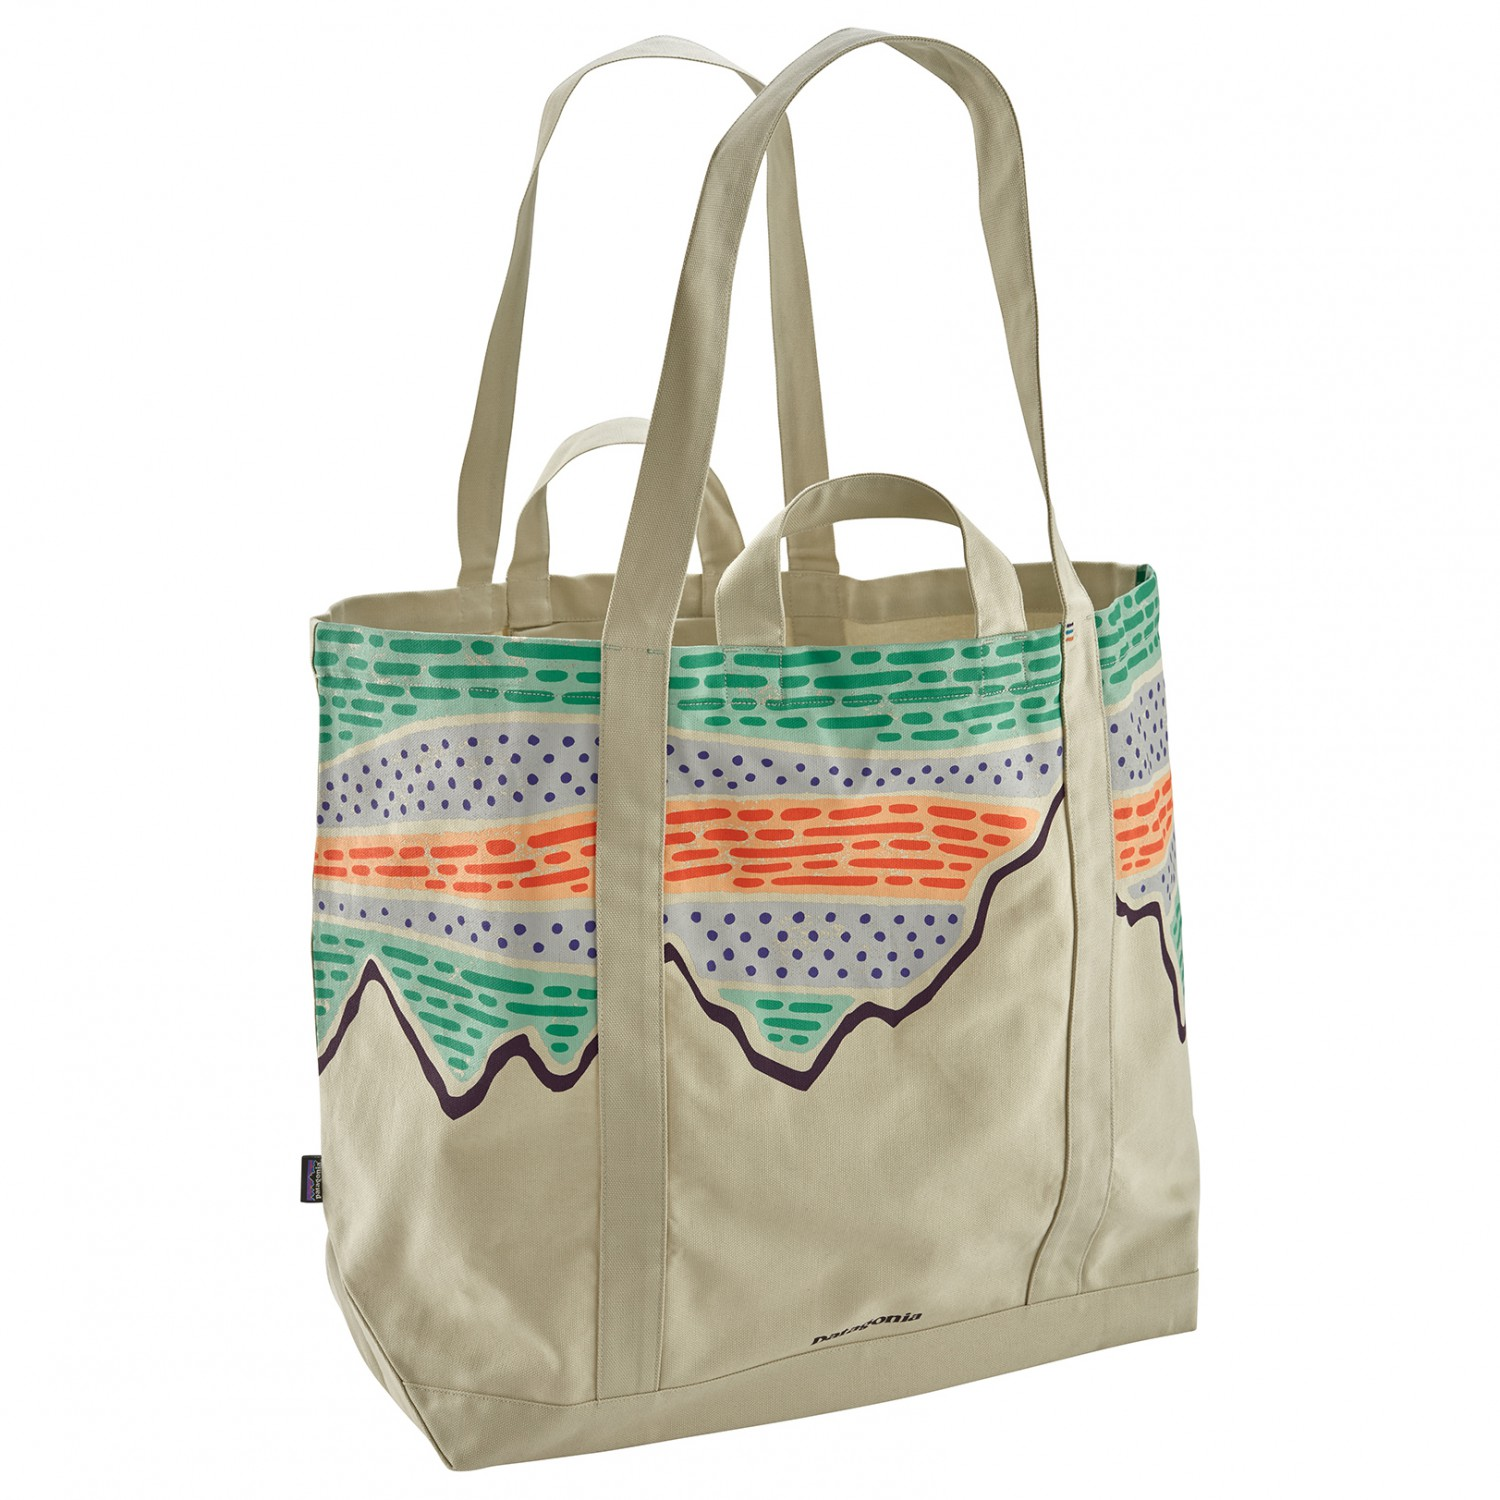 ee0468626 Patagonia - All Day Tote